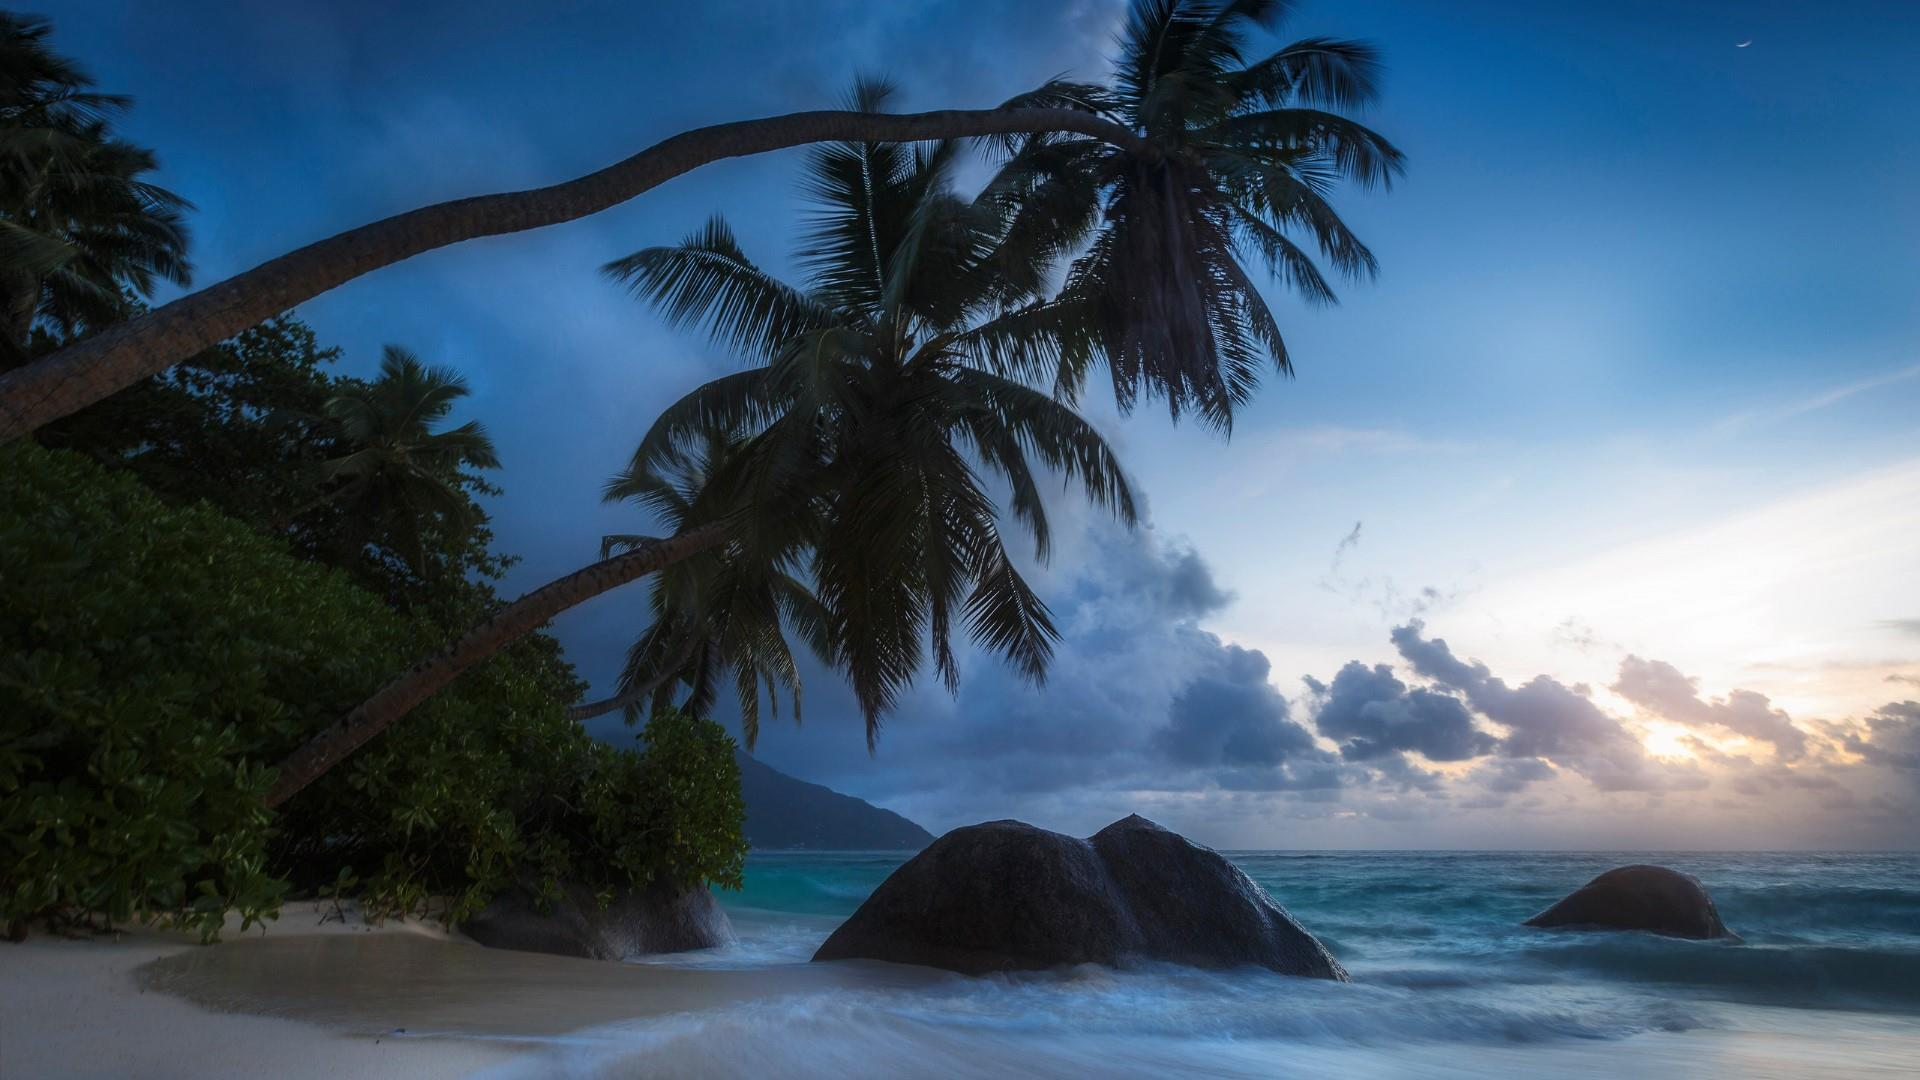 Summer evening in the paradise wallpaper